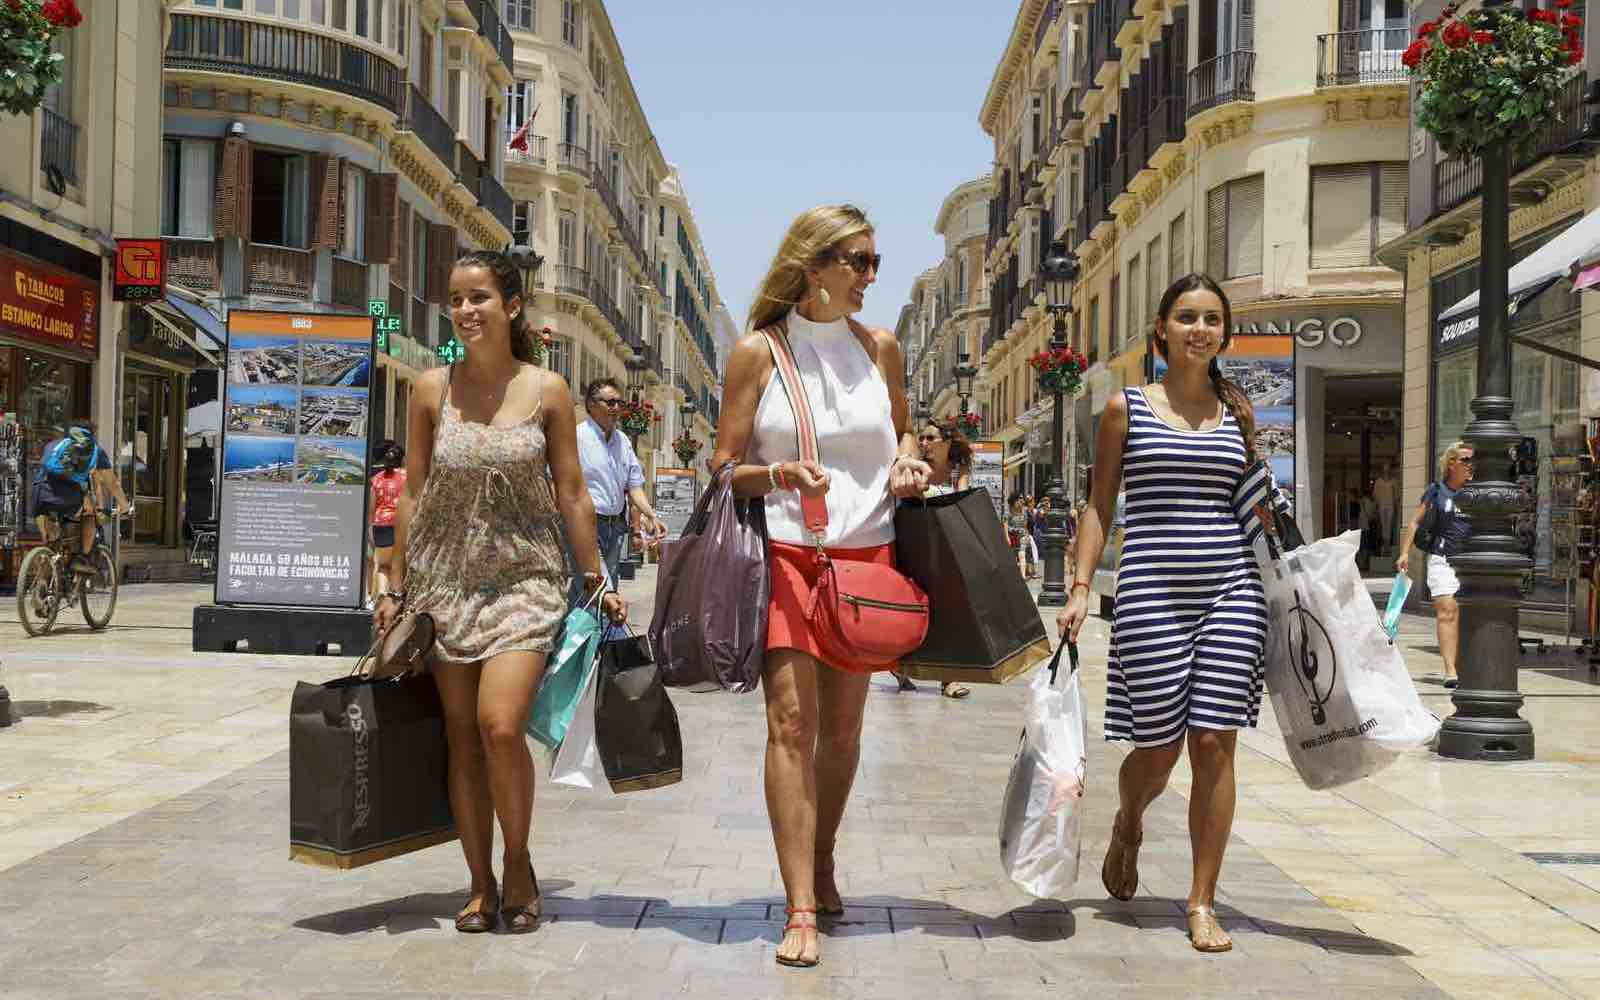 Girls on shopping in Calle Leiros